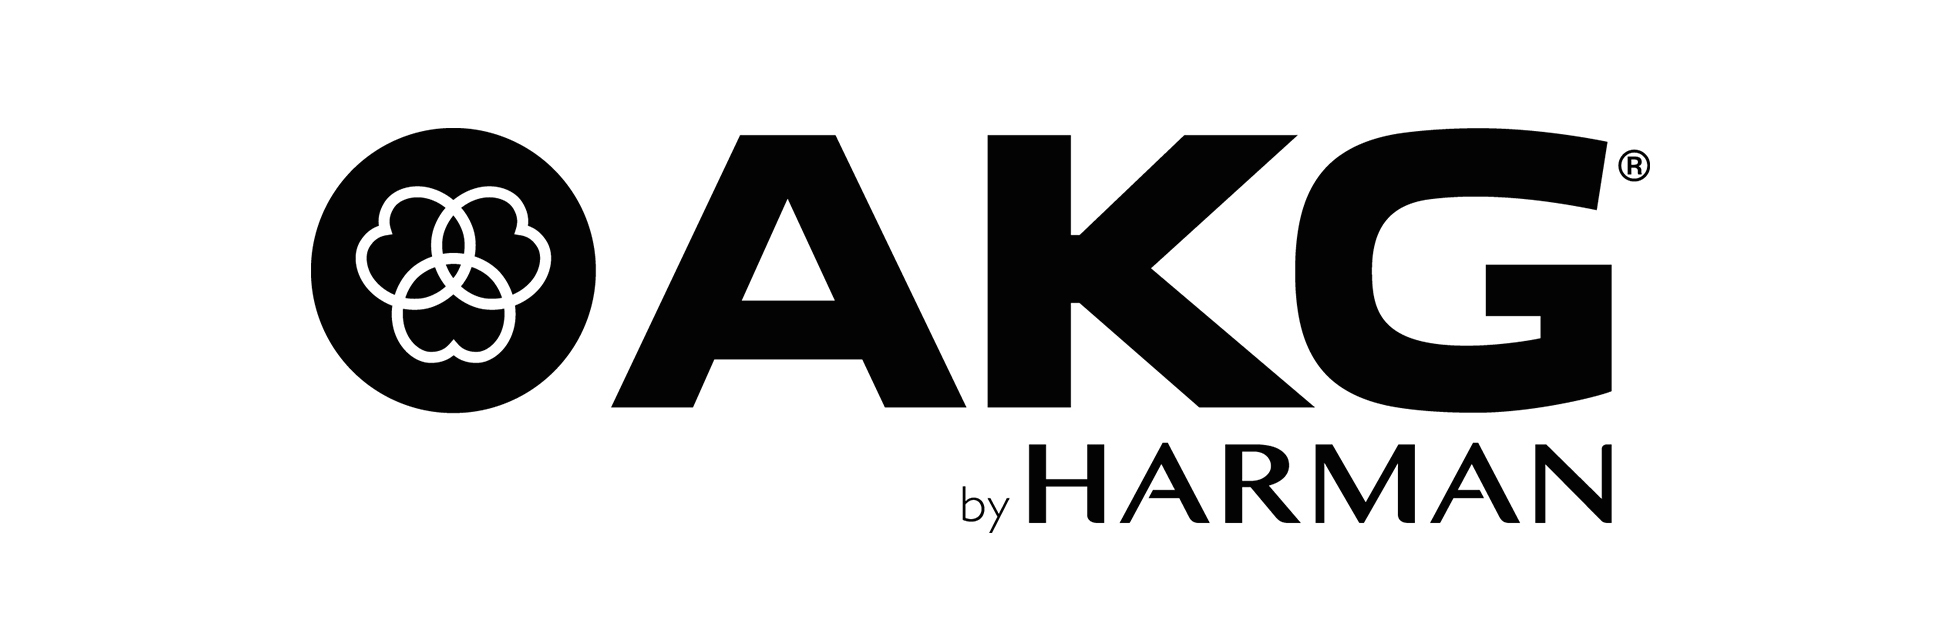 AKG-by-Harman-logo.jpg